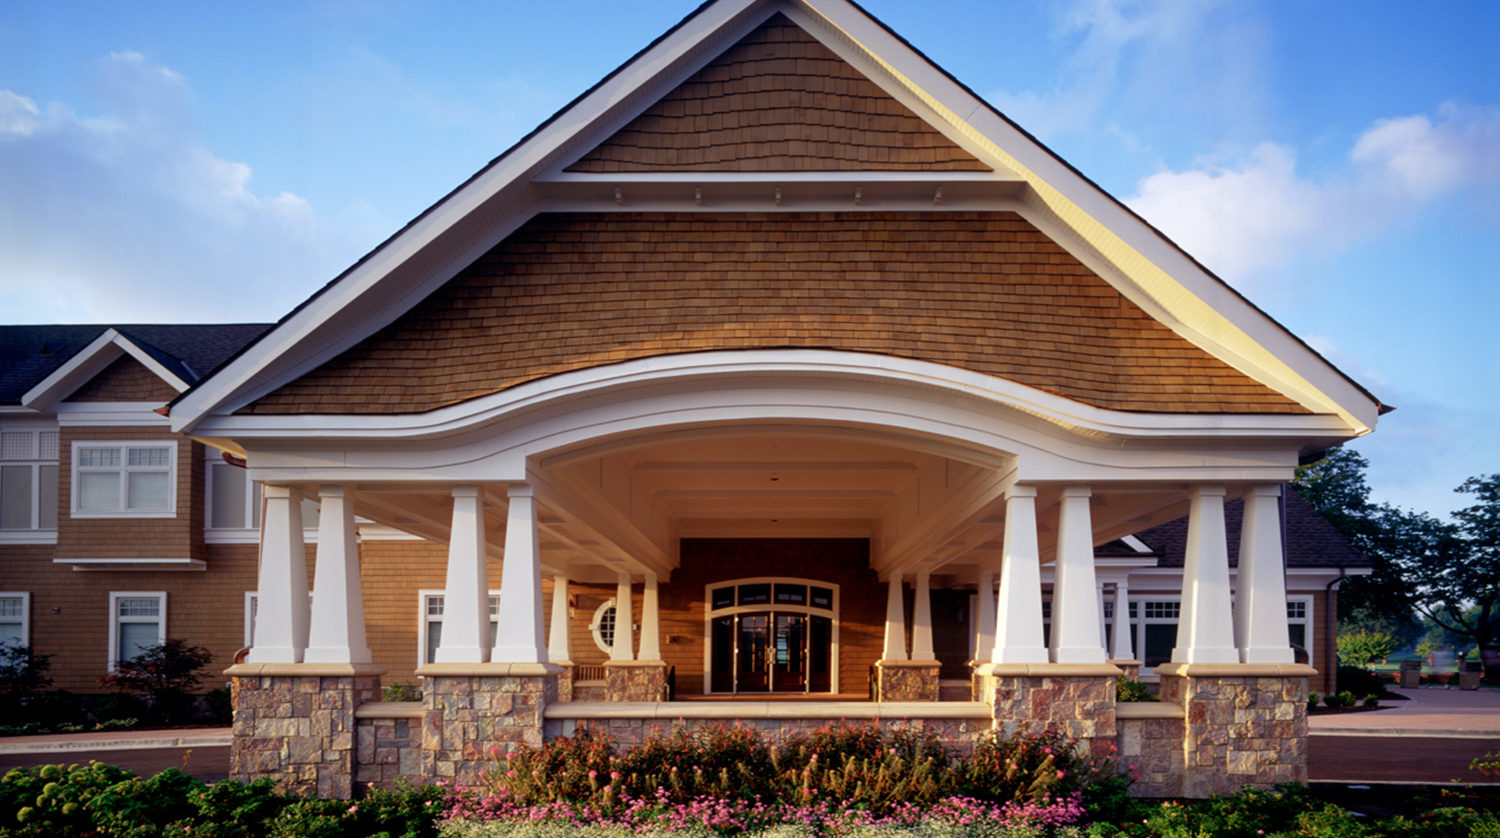 Wheaton Park District Arrowhead Golf Clubhouse exterior 2